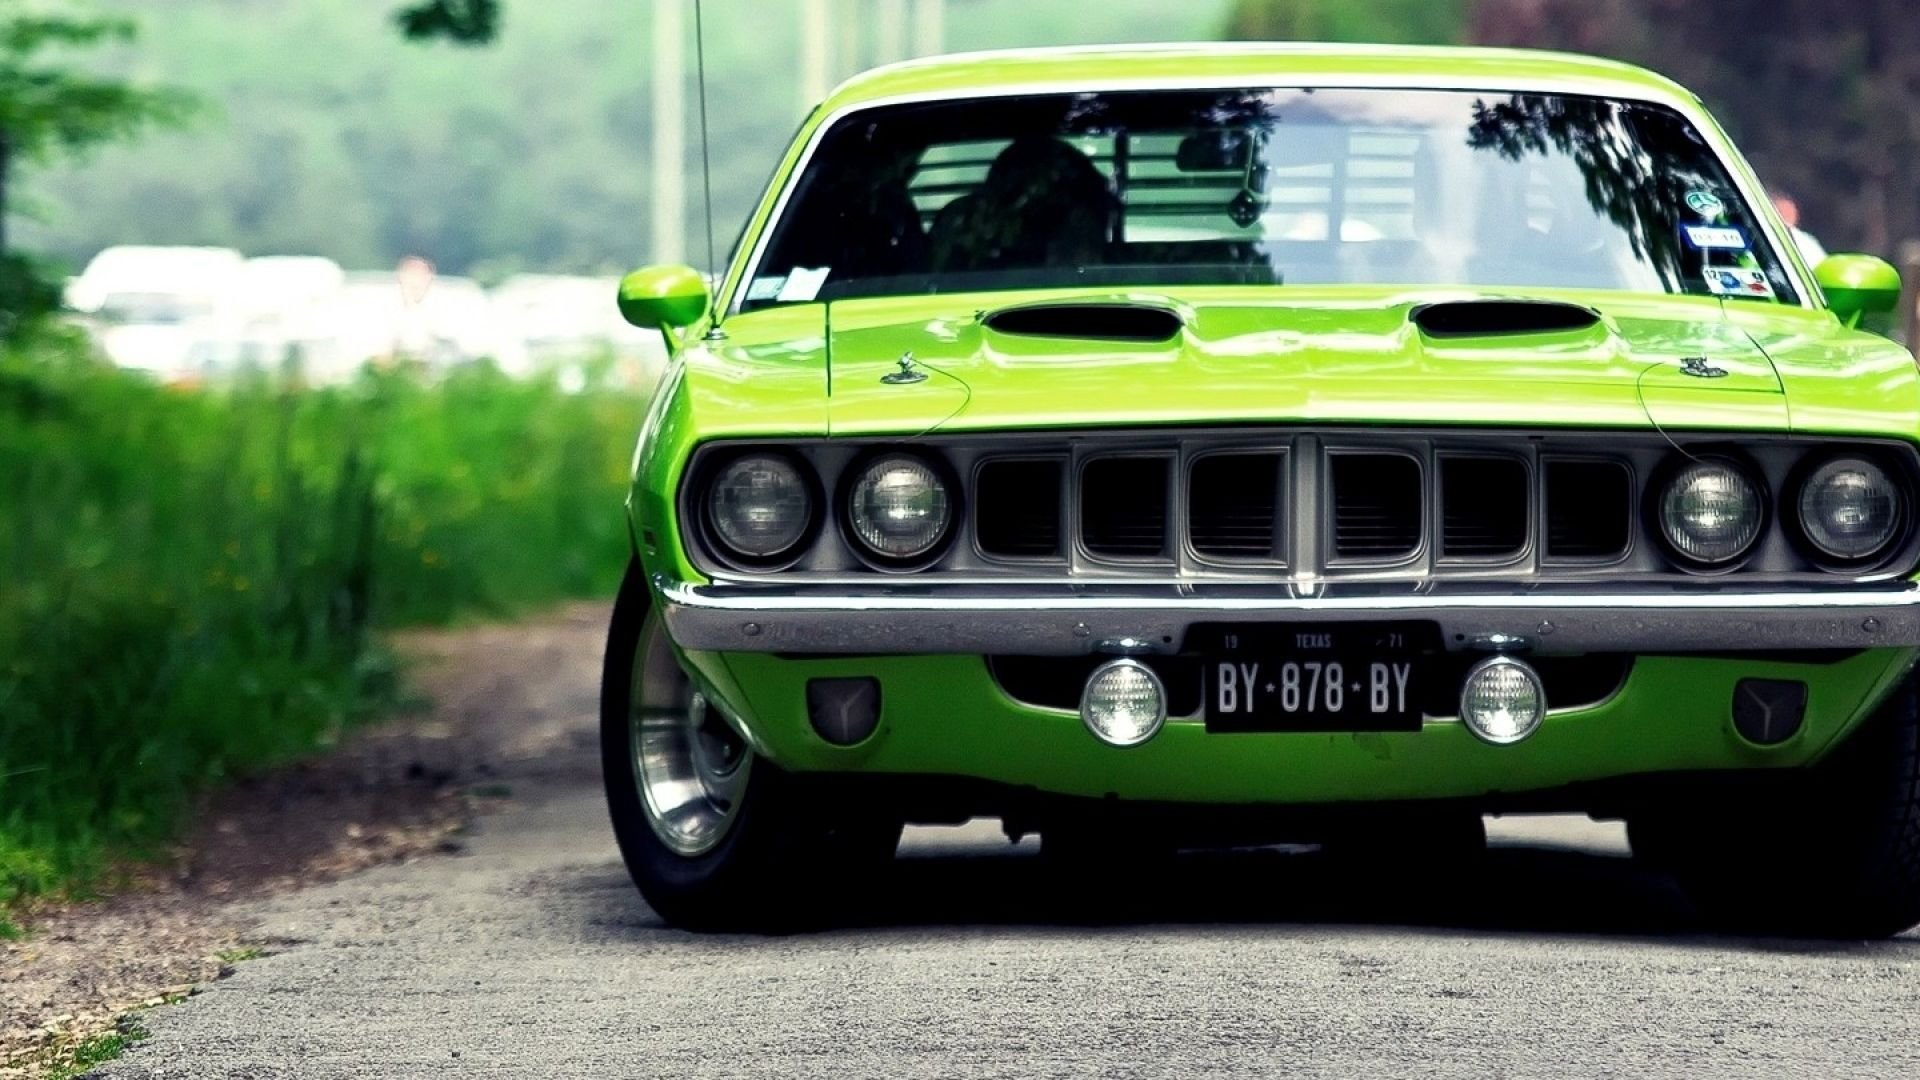 Latest Plymouth Barracuda 1970 Muscle Car Hd Wallpaper Free Download